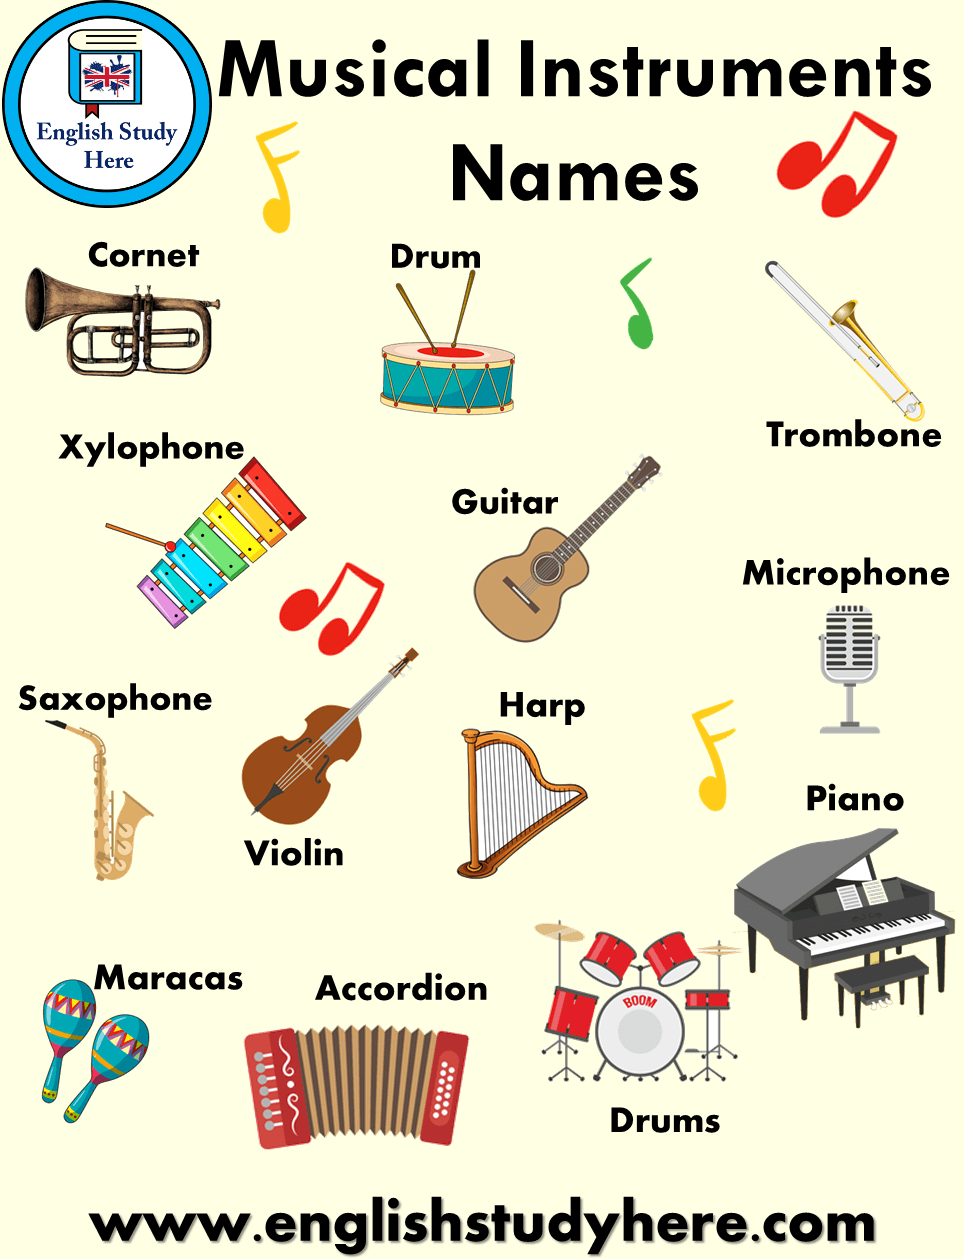 Musical Instruments Names and Pictures - English Study Here #musicalinstruments